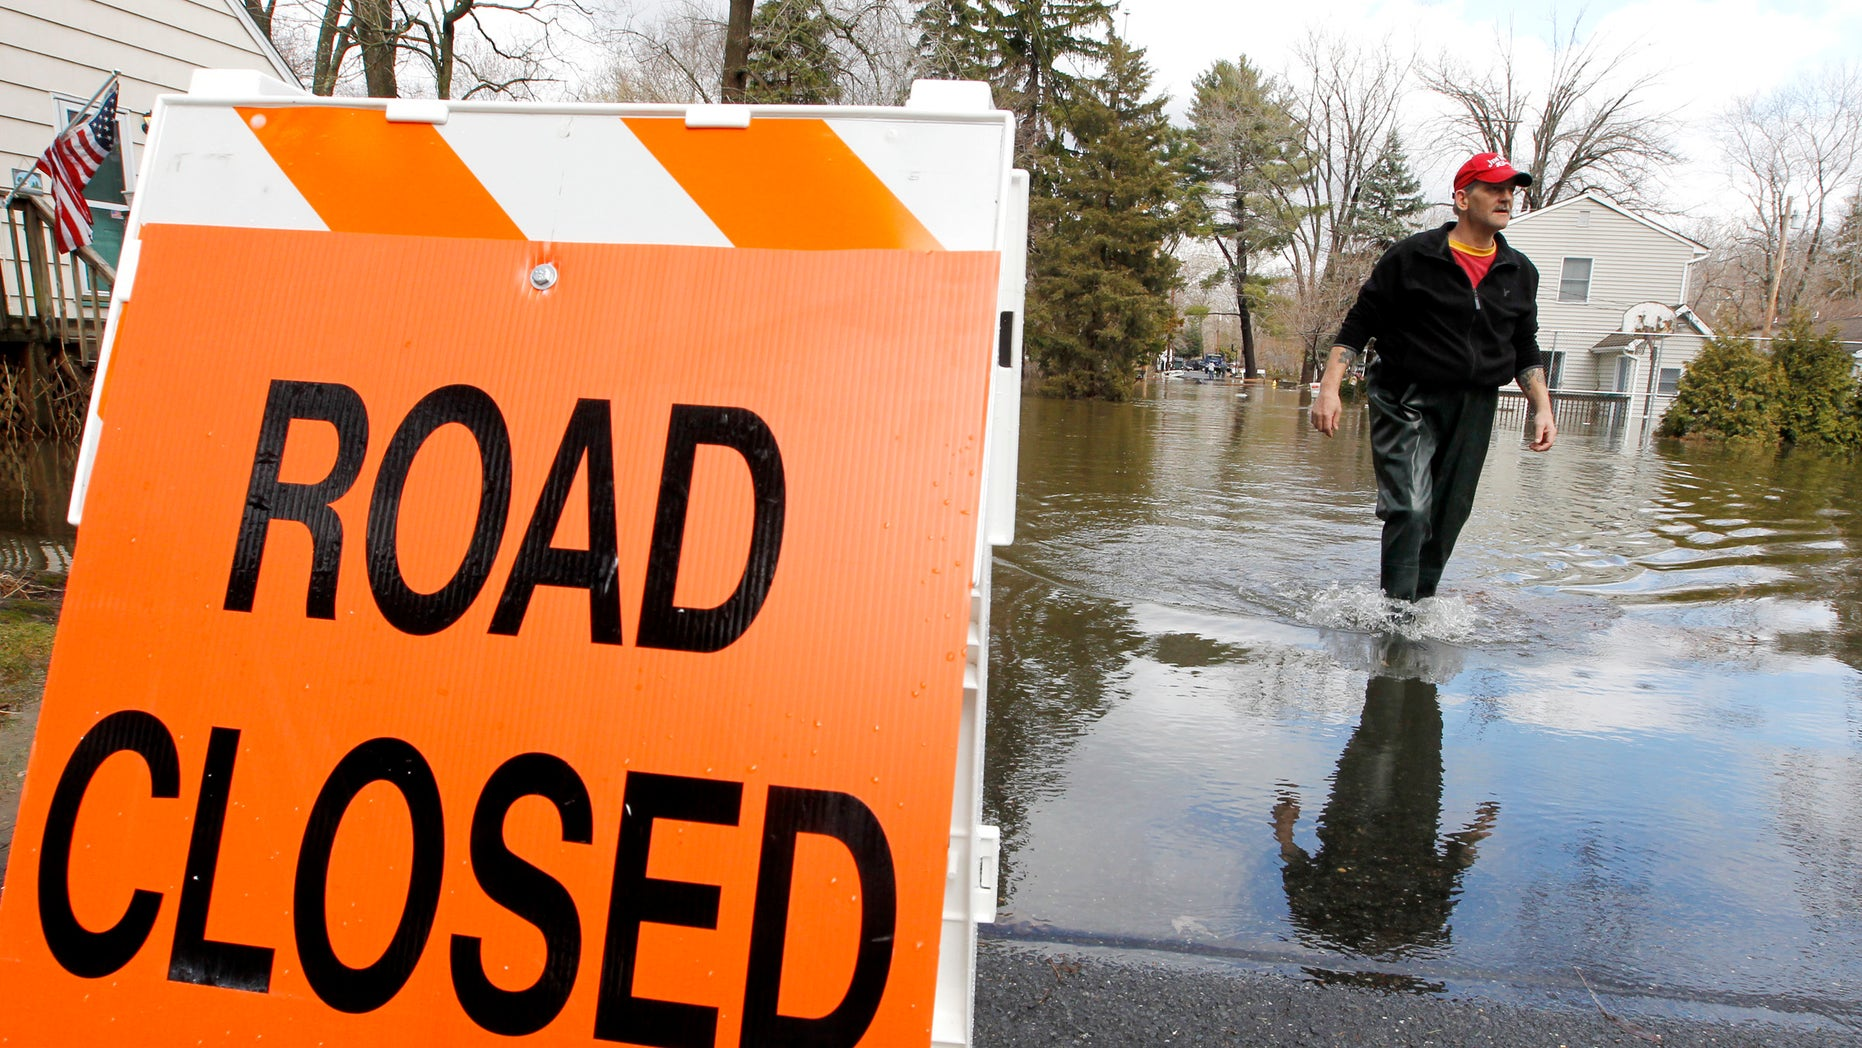 George Ruby, of the Riverview Community in Wayne, N.J., wades through water on his street, Friday, March 11, 2011. The water levels rose Friday morning, following a storm that hit the northern New Jersey region.